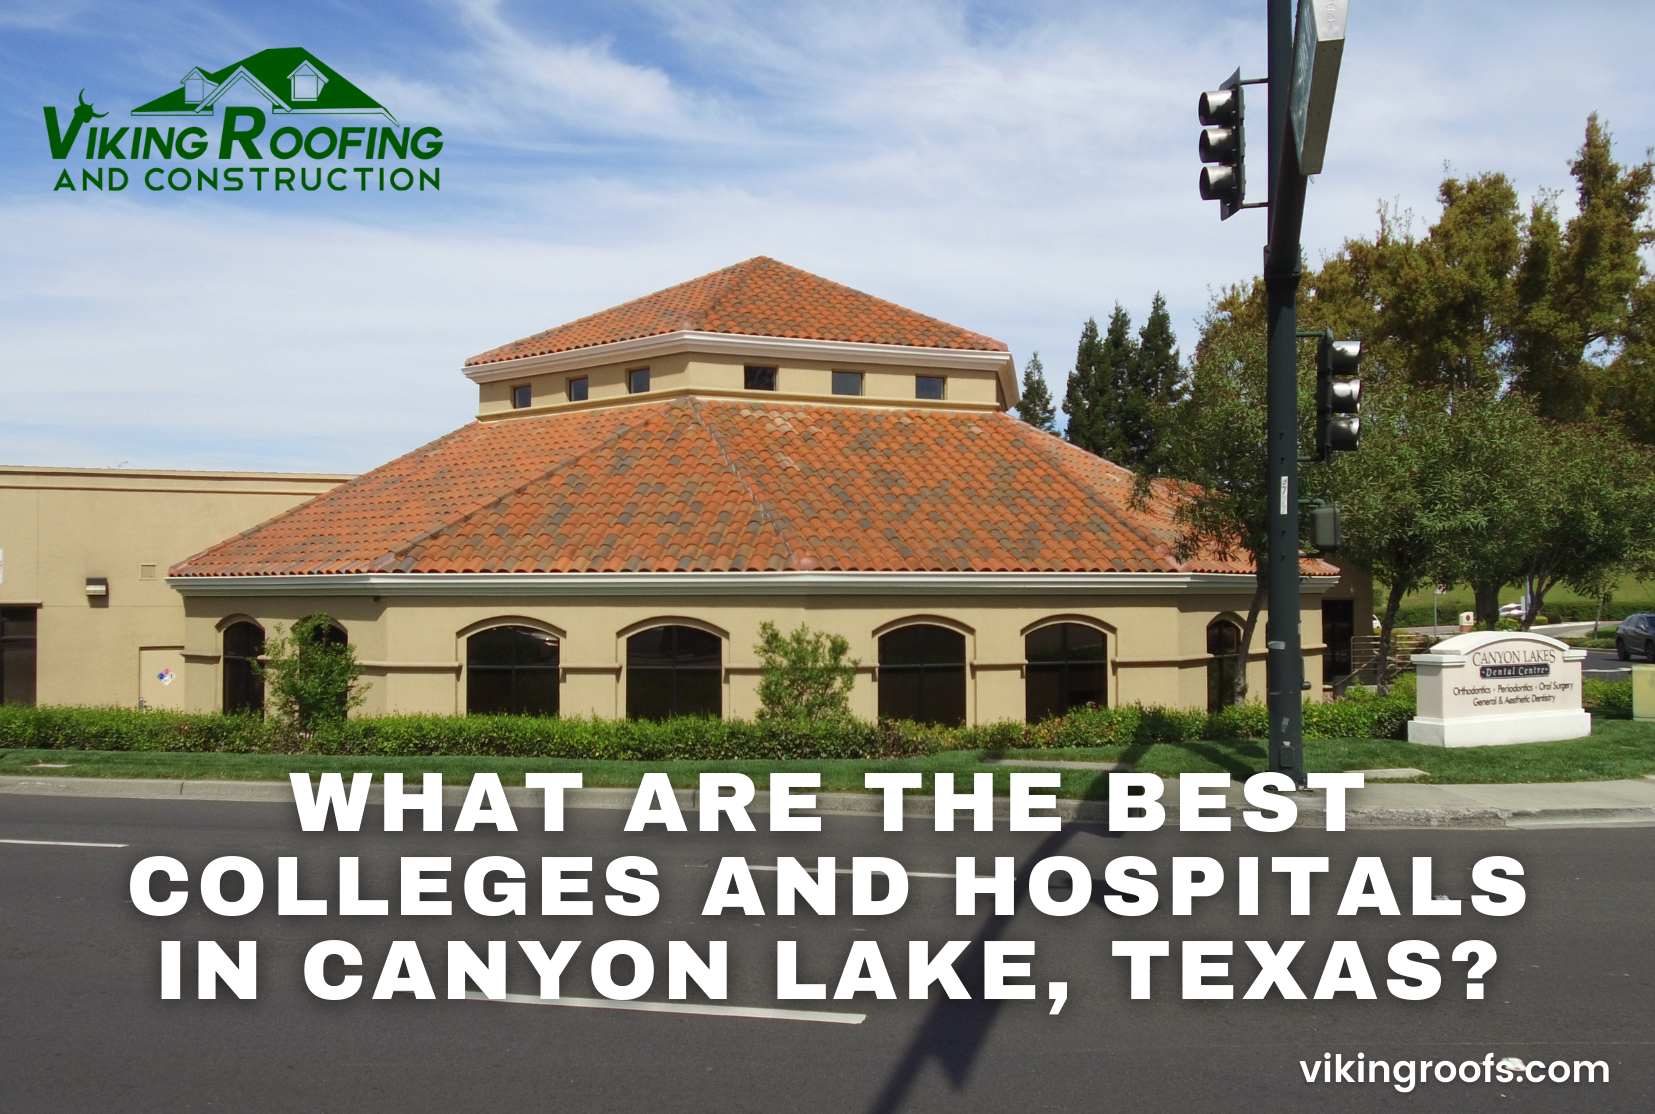 Viking Roofing - What are the Best Colleges and Hospitals in Canyon Lake, Texas_